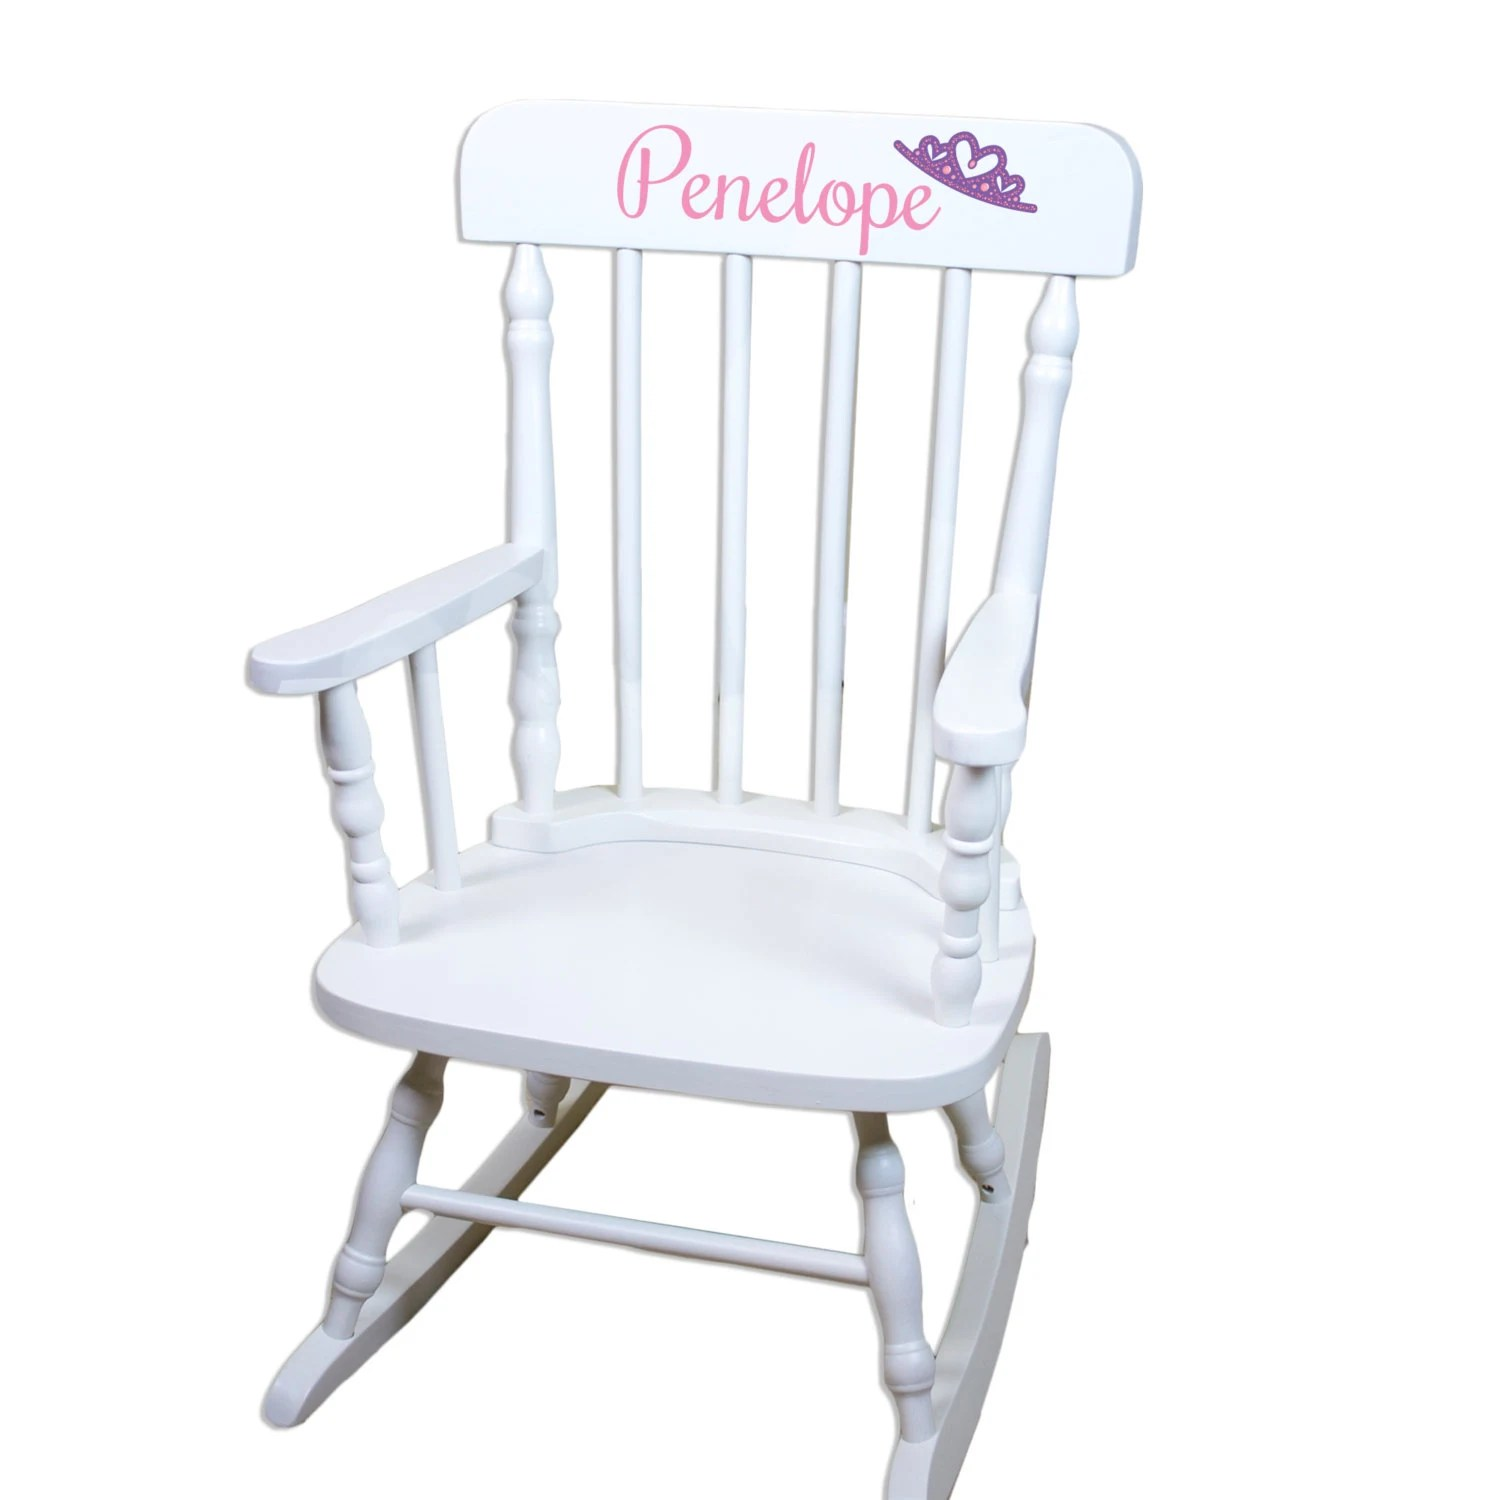 Personalized Chairs For Baby Personalized Childs White Rocking Chair W Name Nursery Furniture Toddler Baby Girl Boy Kids Custom Spindal Rocking Chairs Rocker Spin Whi